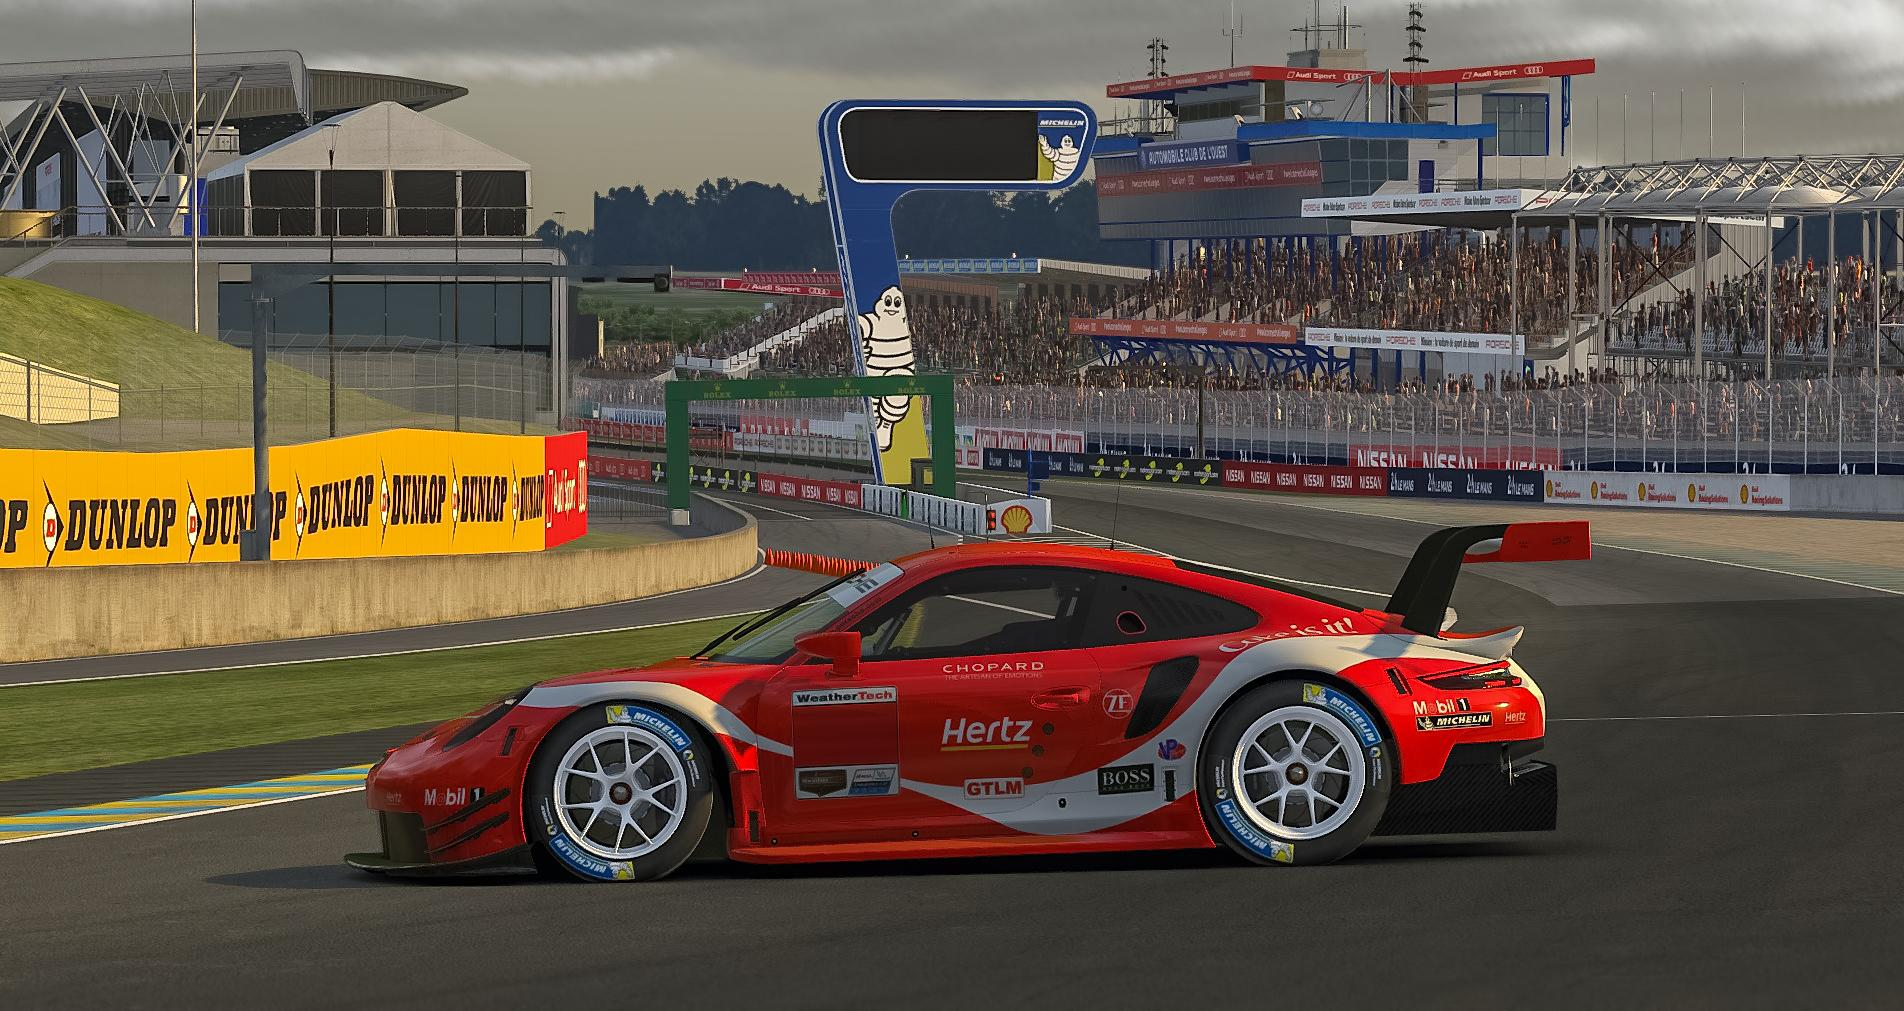 Preview of Coca-Cola Porsche RSR by Paul Mansell